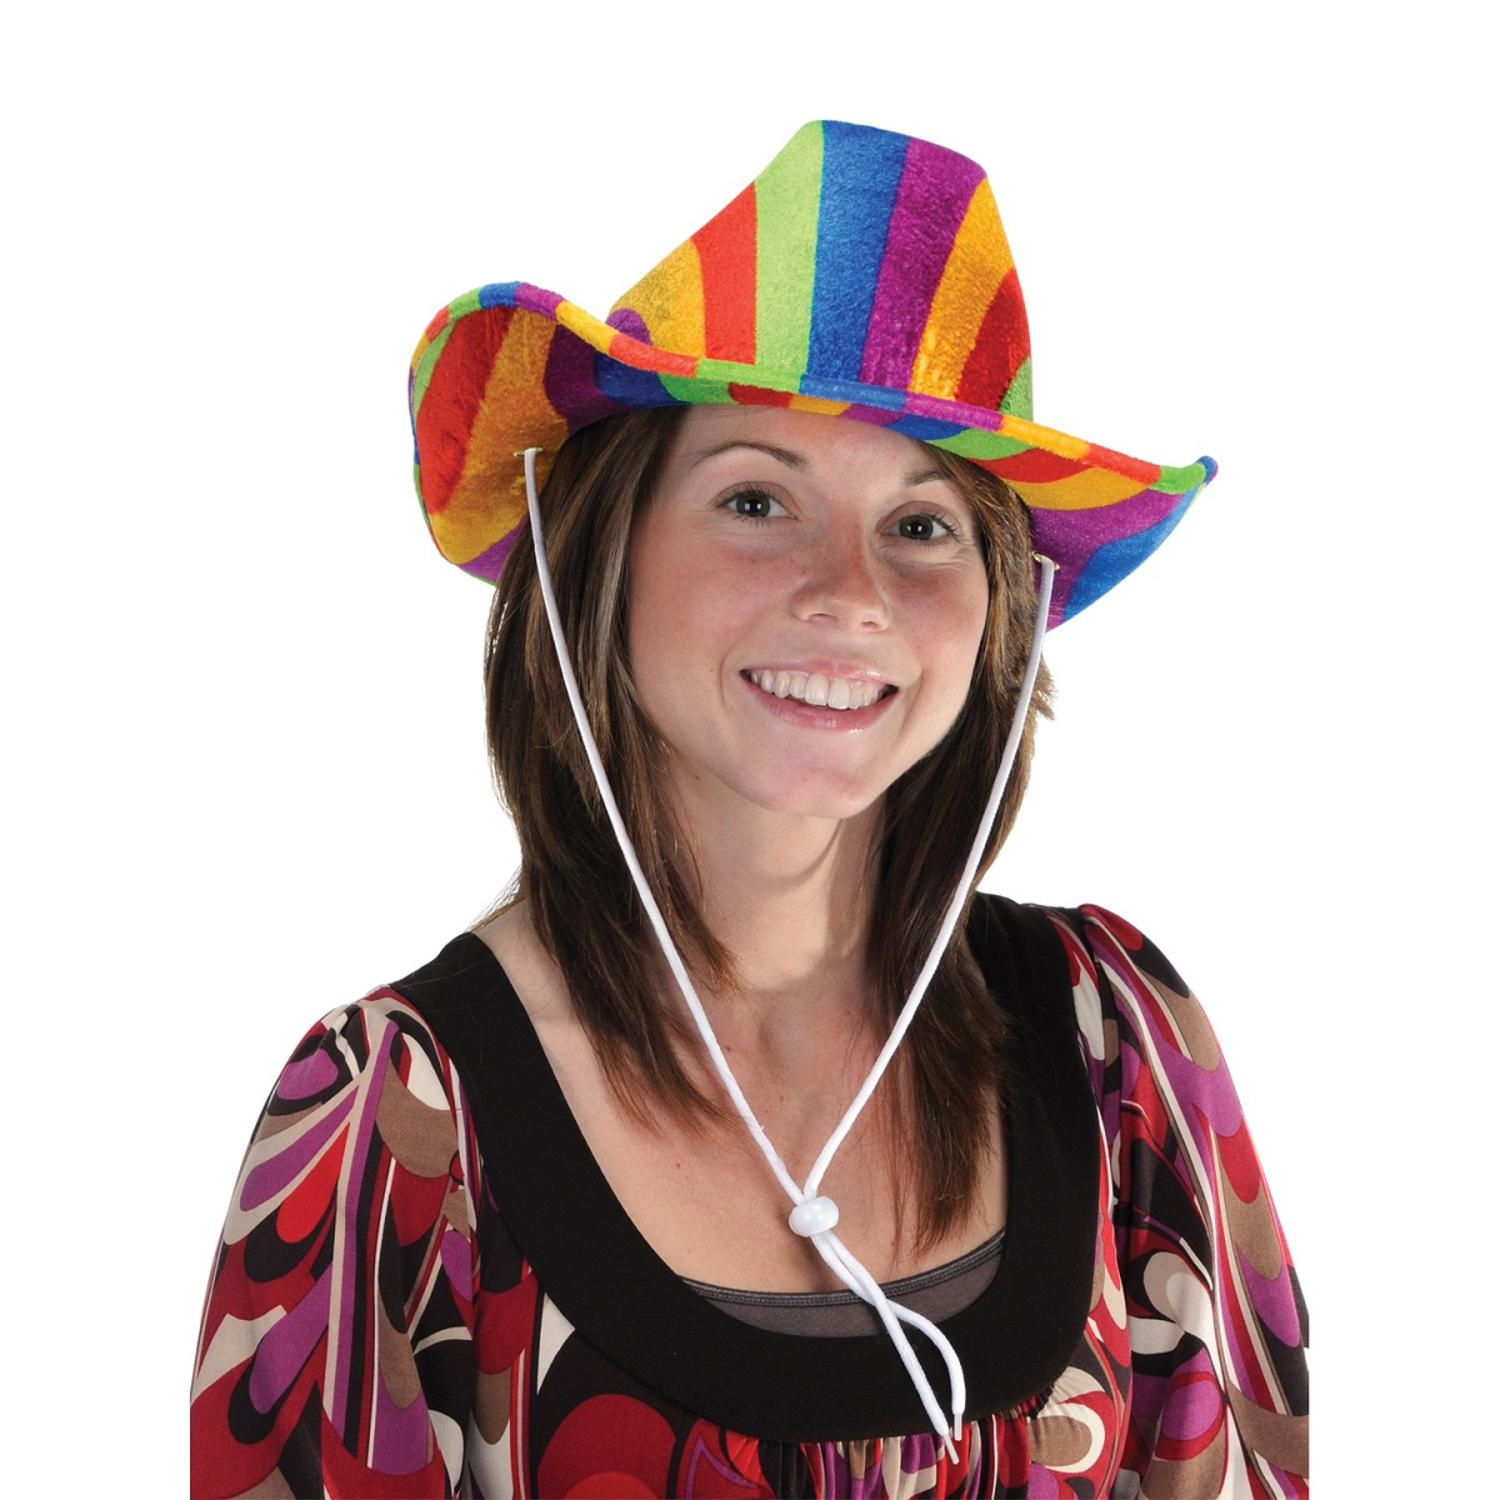 Pack of 6 Cowboy Themed Rainbow Hat Costume Accessories